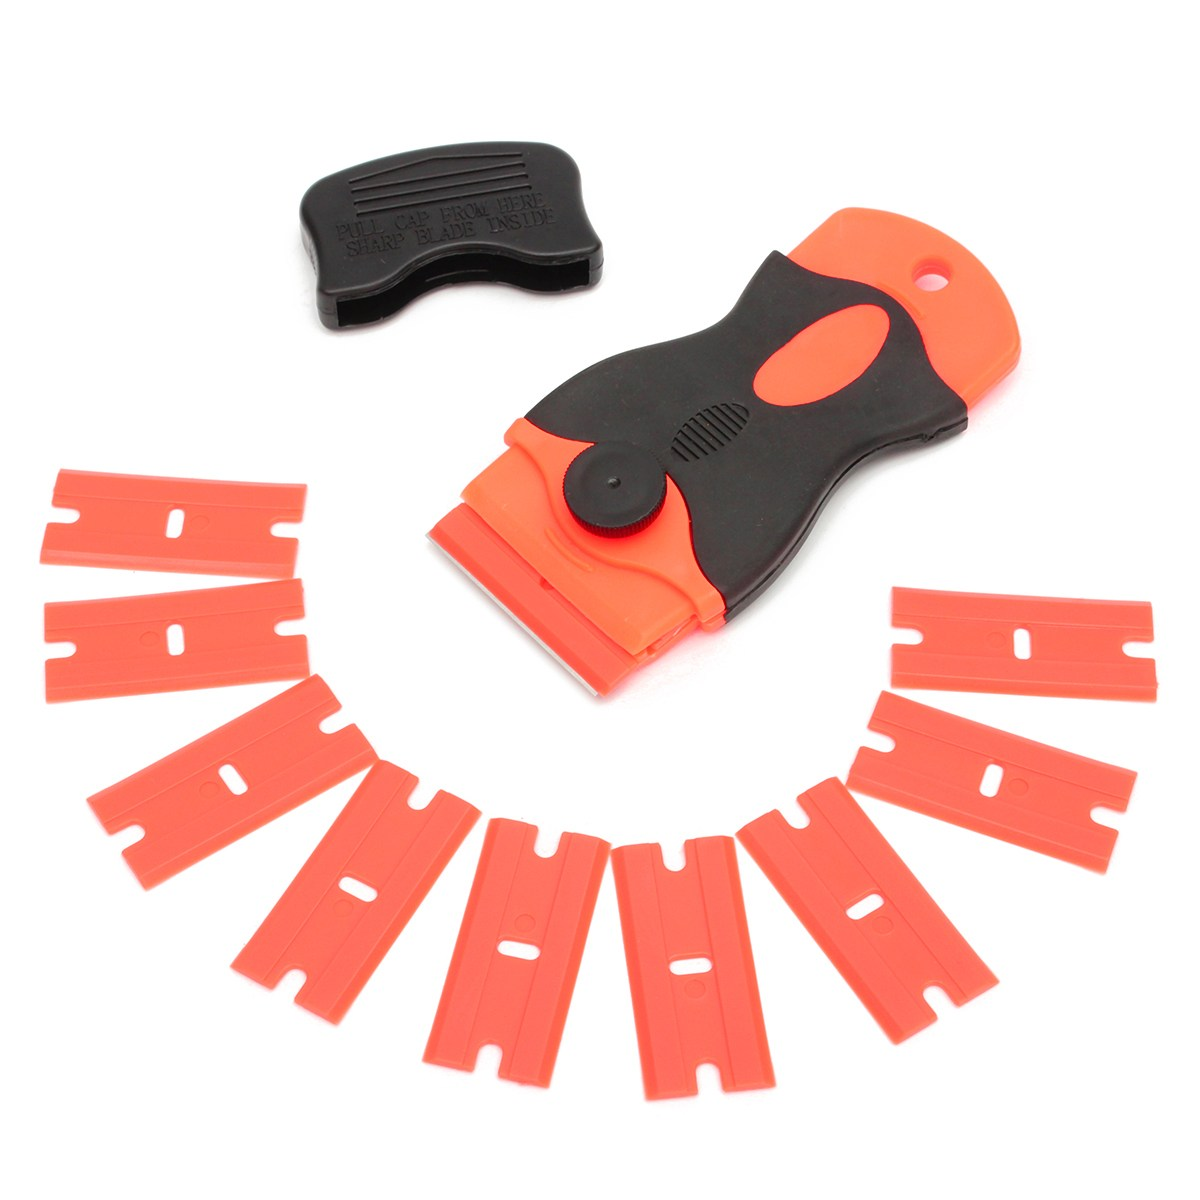 10 Plastic Scraper & 10pcs Steel Blades Knife Tinting Tools Ice Scraper Car Squeegee Vinyl Film Stickers Covers Tool